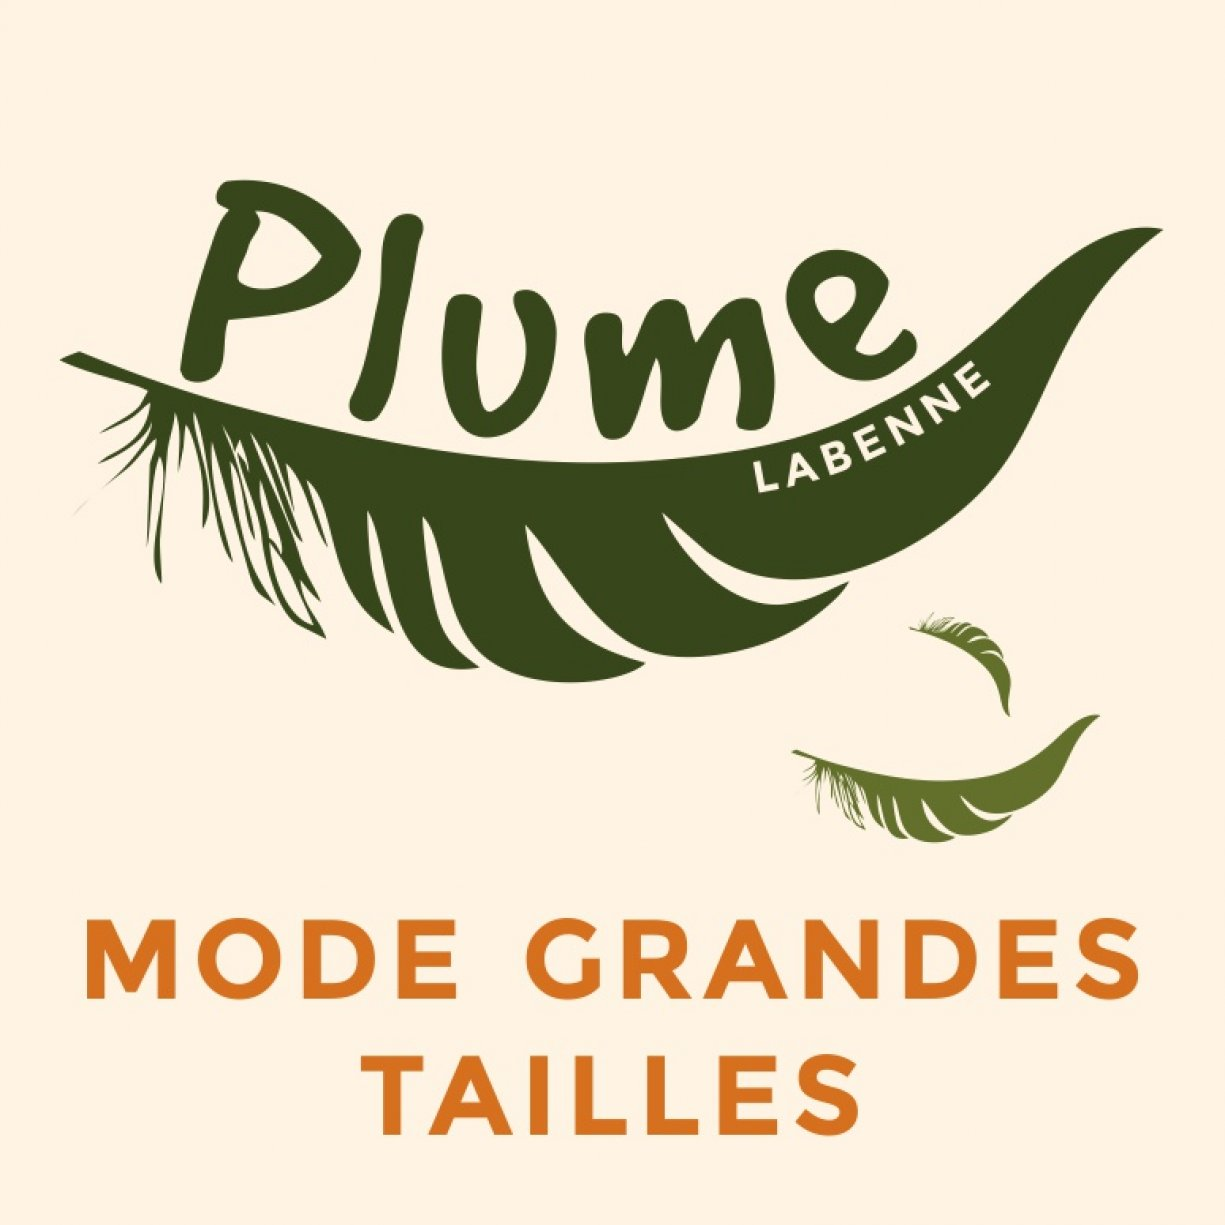 Plume Mode Grandes tailles